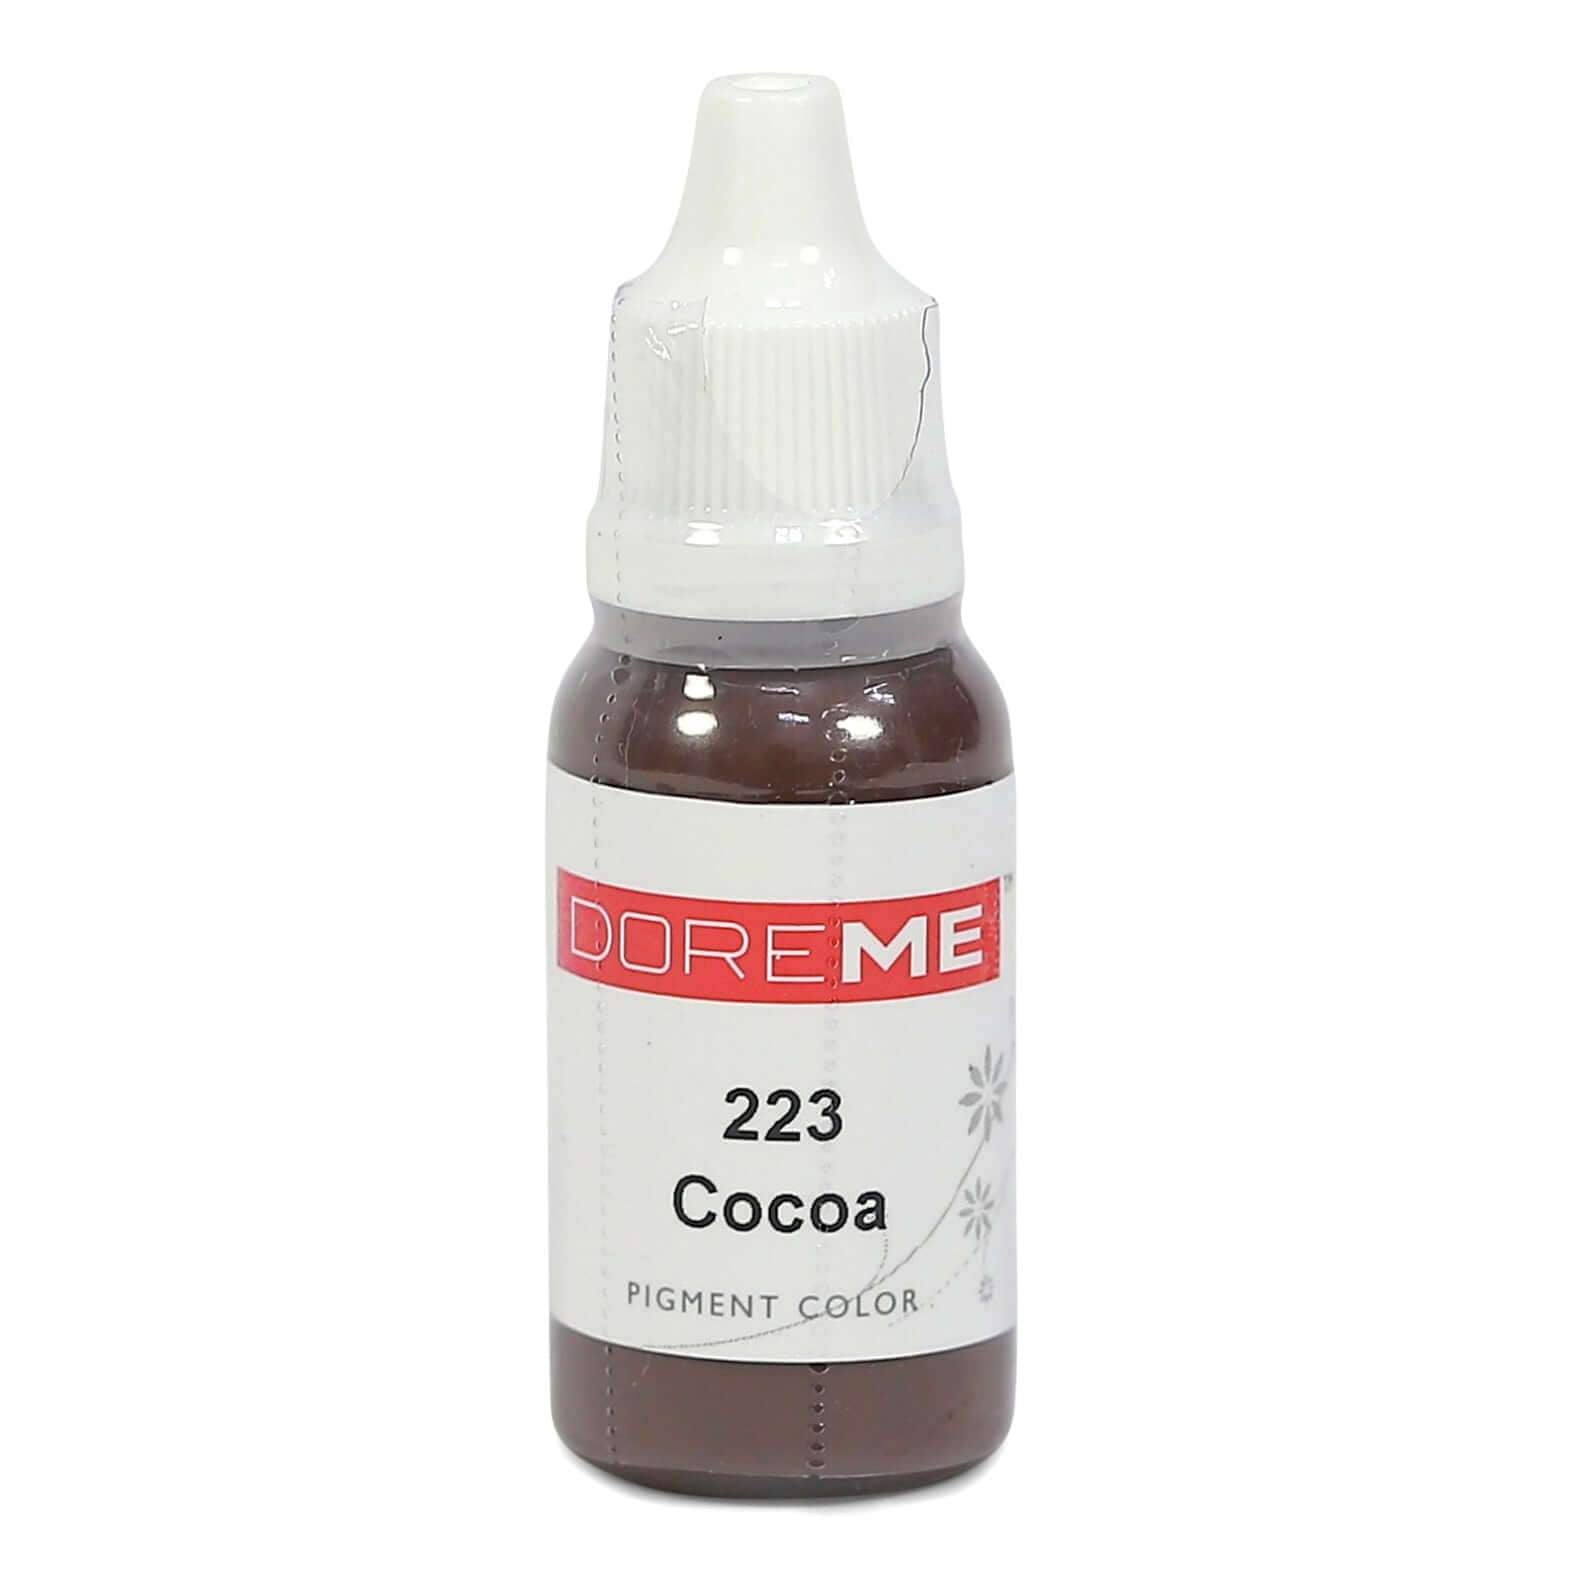 Permanent Makeup pigments Doreme Micropigmentation Eyebrow, Eyeliner, Lip Colours 223 Cocoa (c) - Beautiful Ink UK trade and wholesale supplier